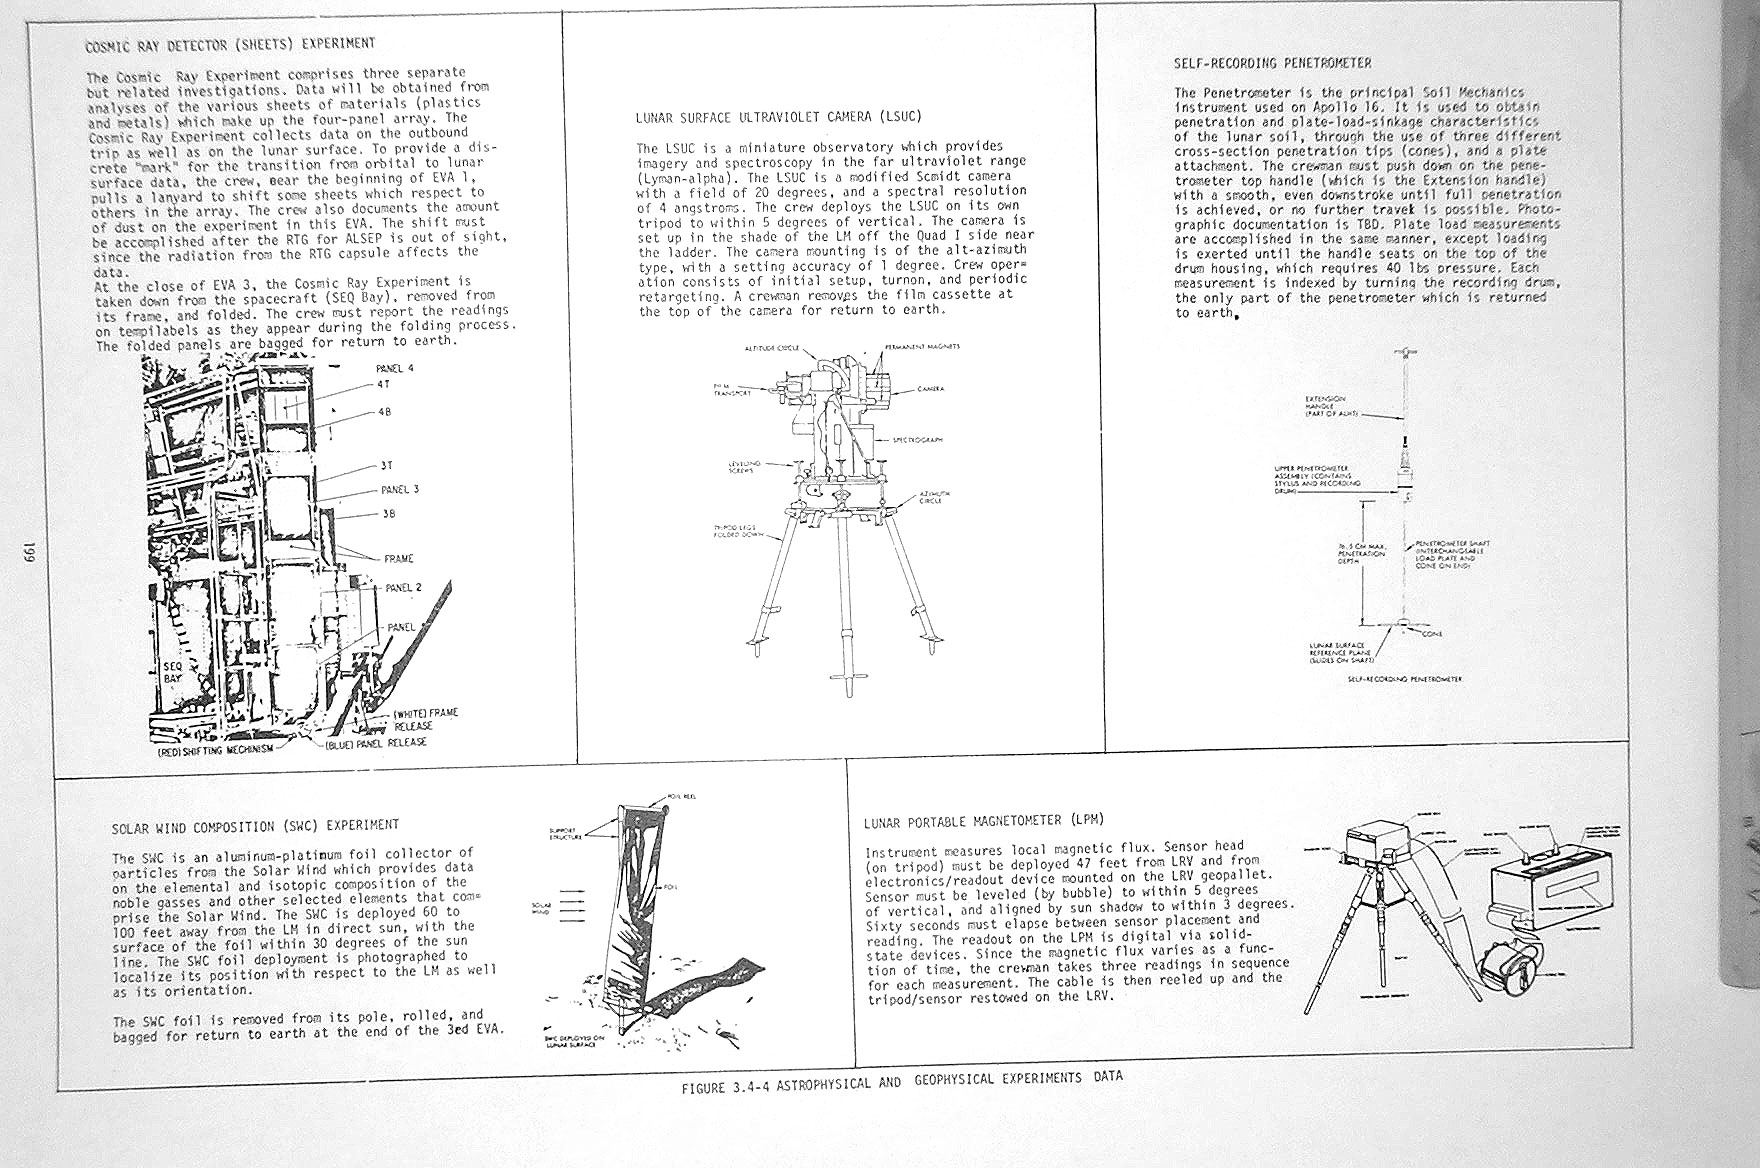 Loading The Rover Wiring Diagram For Hardsuits Ground Fault Circuit Breaker Lunar Surface Procedures Volume